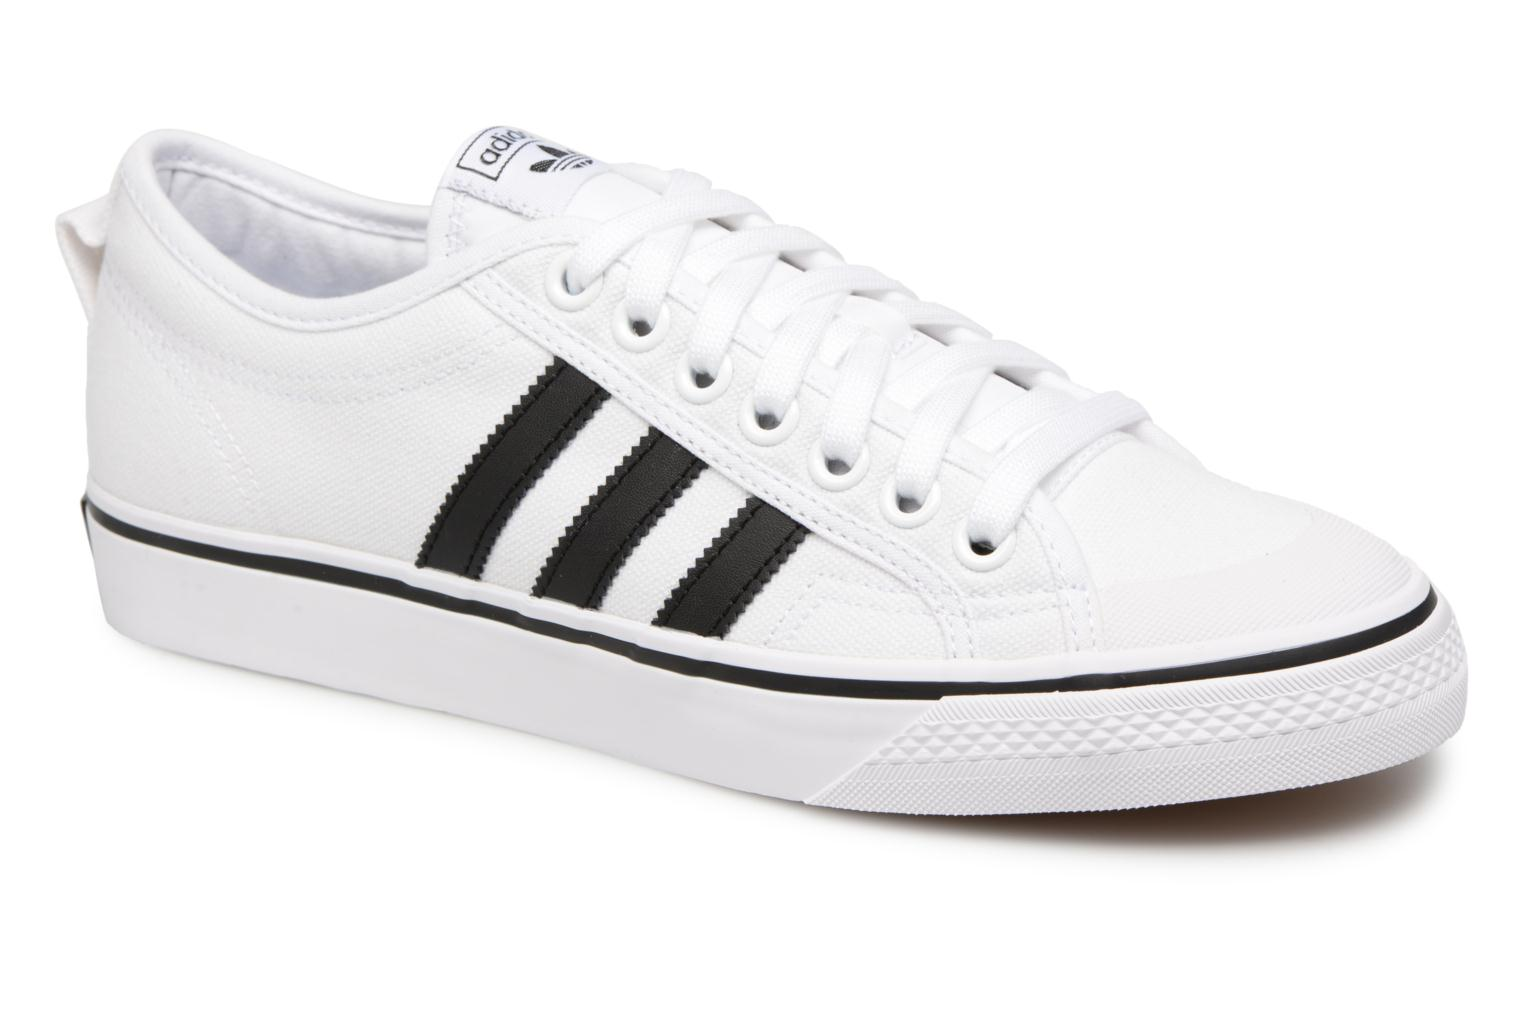 Adidas Adidas Adidas Nizza Originals Nizza Originals